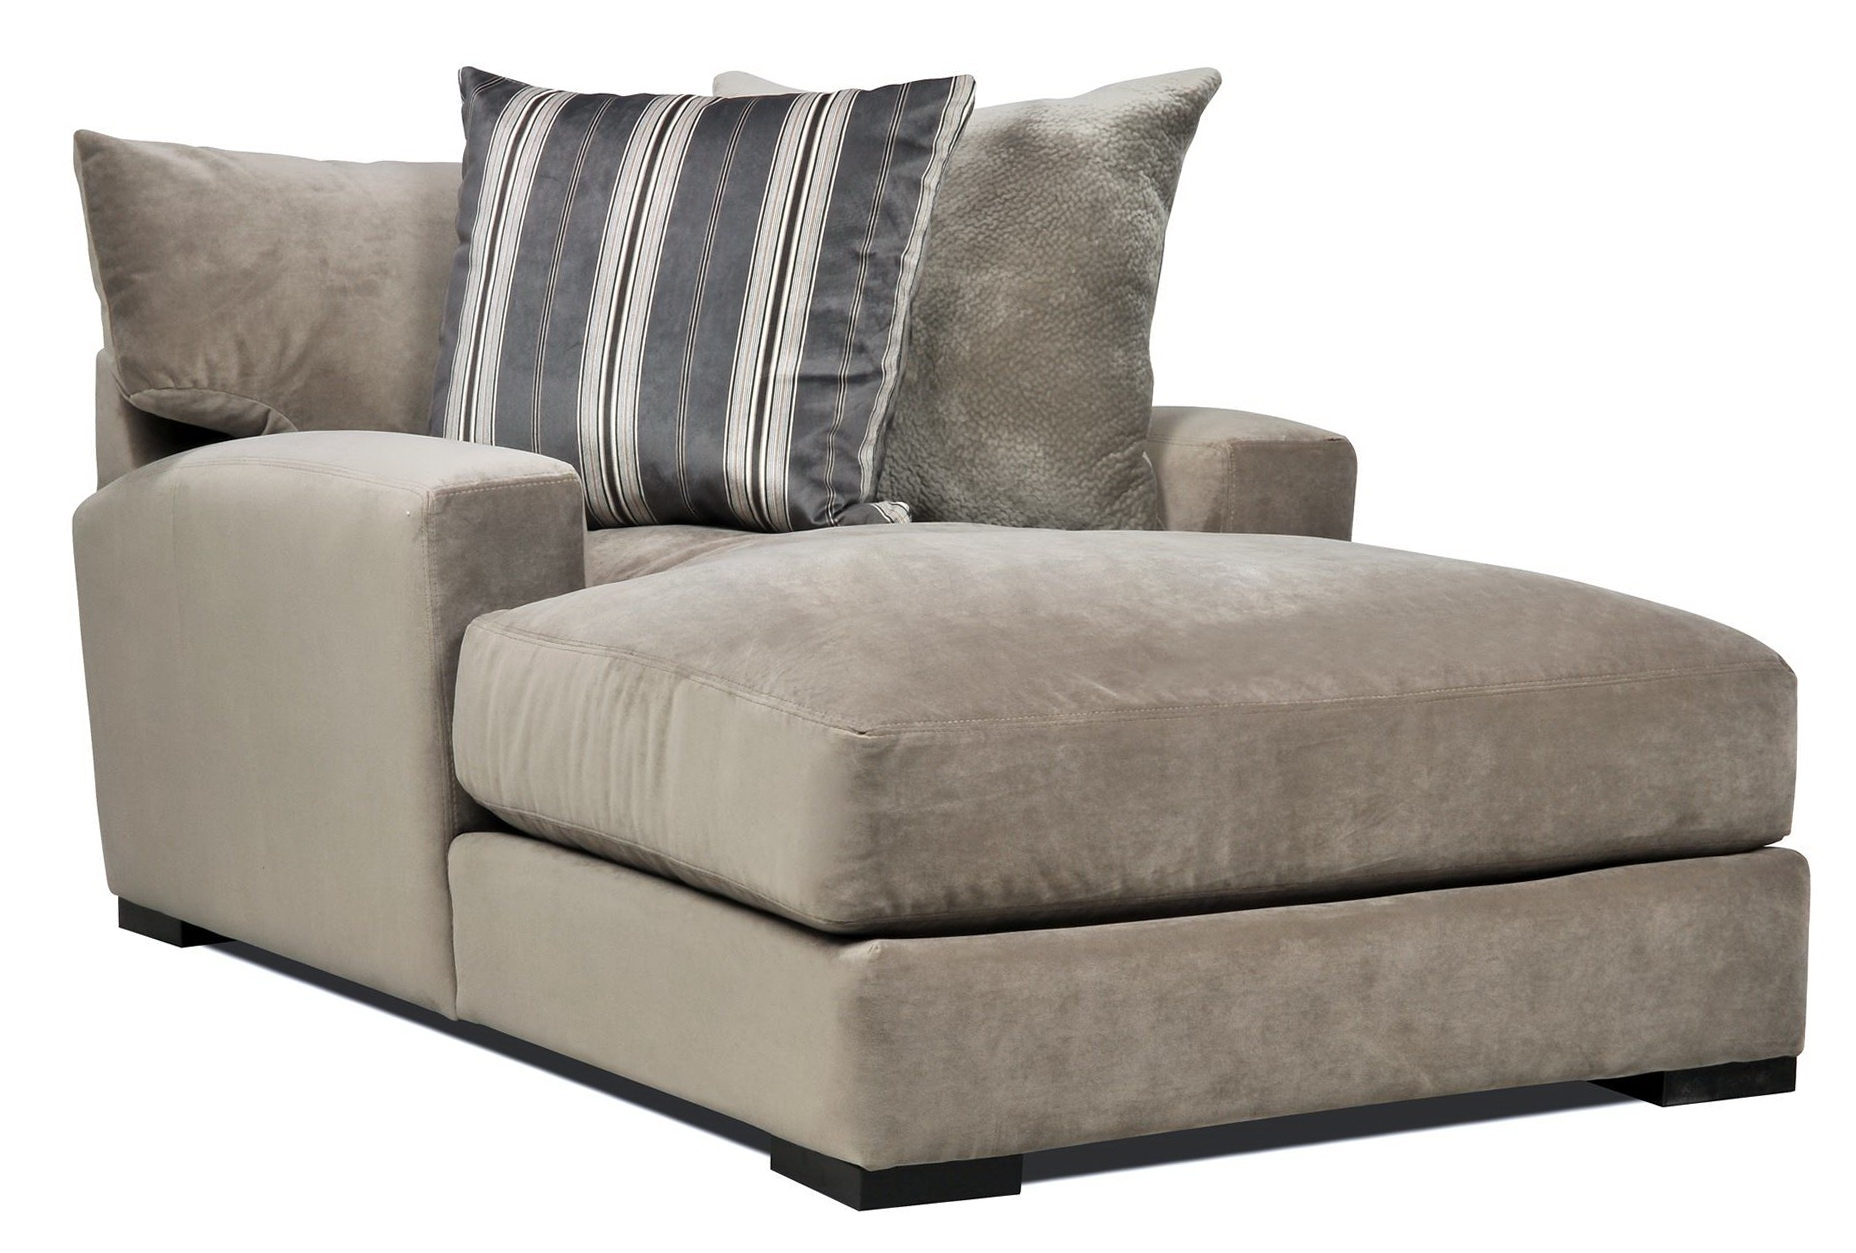 Well Known Oversized Chaises Inside Furniture: Double Wide Chaise Lounge Indoor With 2 Cushions (View 9 of 15)